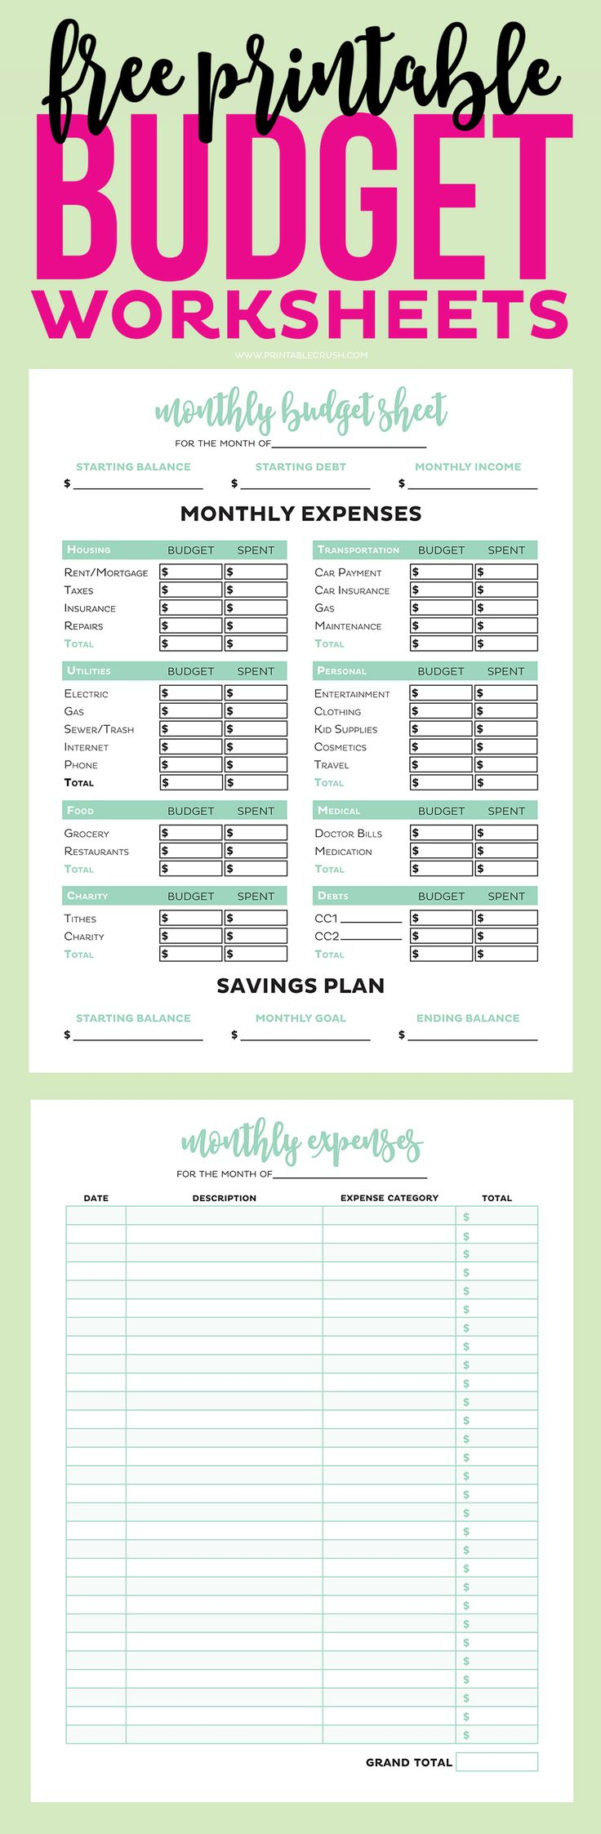 Envelope Budget Spreadsheet In Spreadsheet Personal Budget Template Ss 1 0 Jpg Free Excel Expense